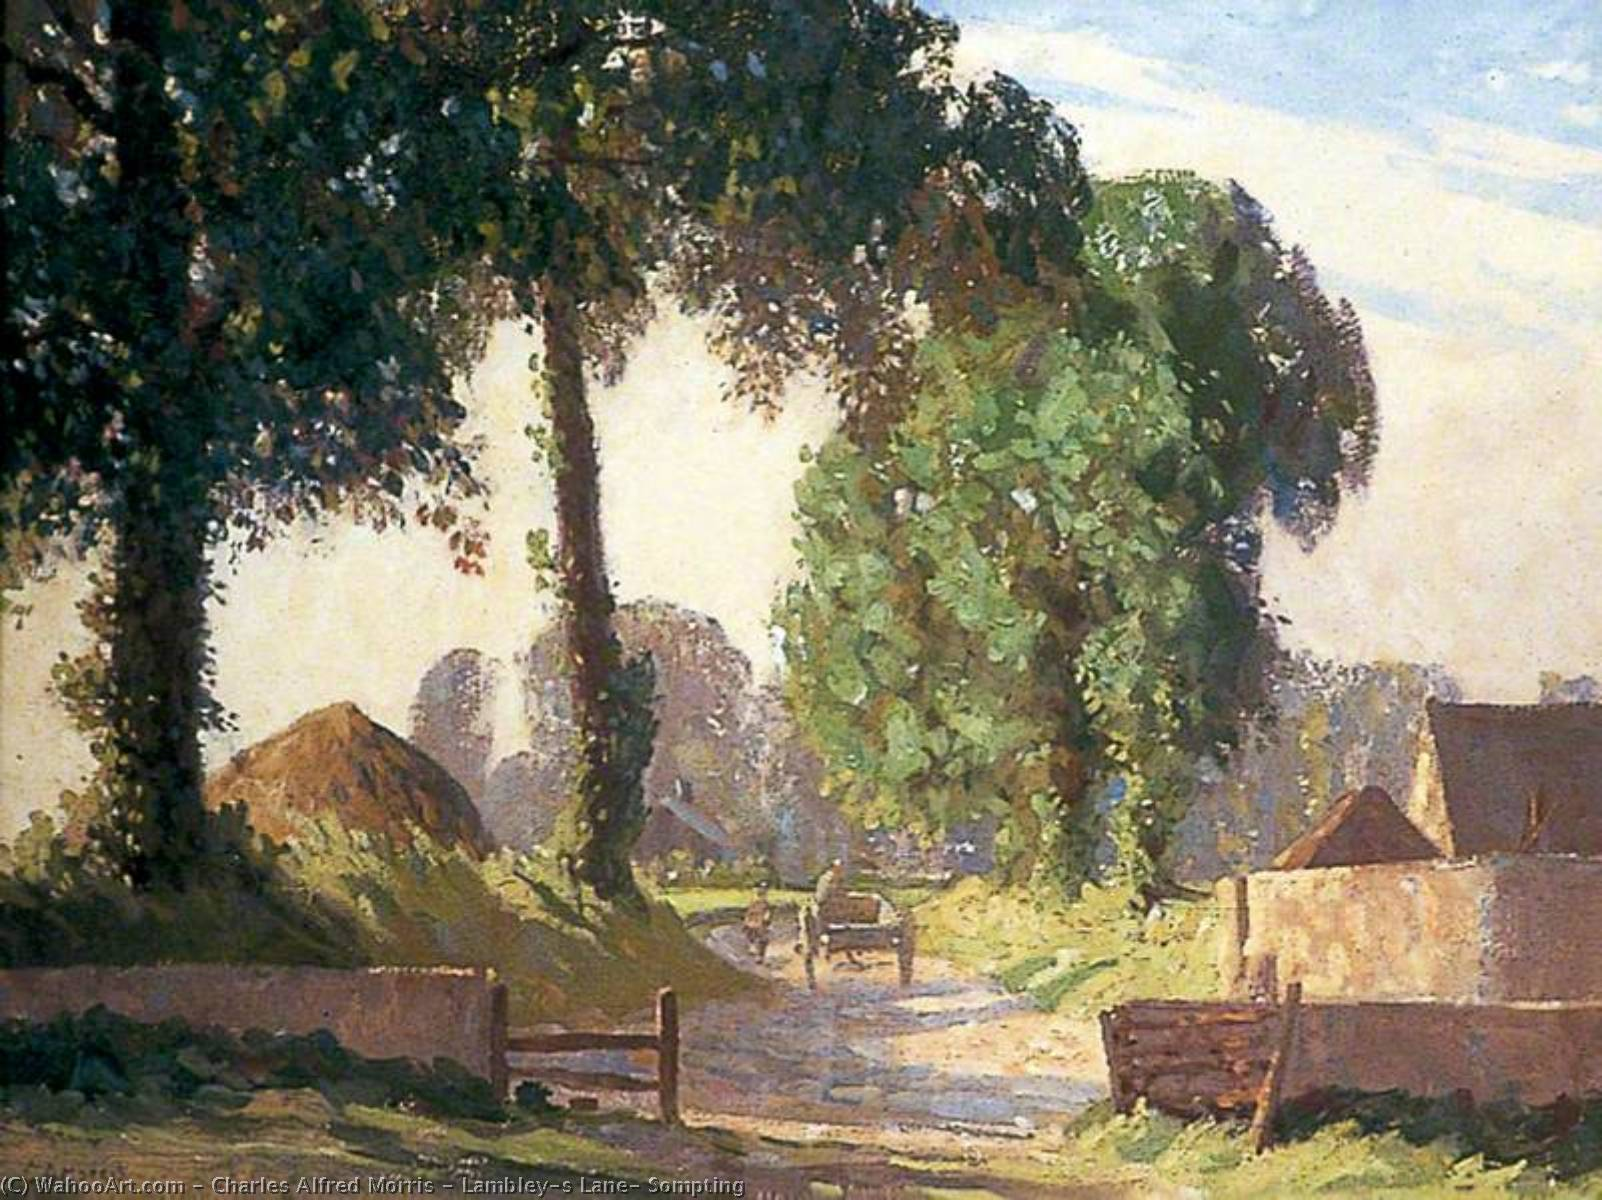 Order Paintings Reproductions | Lambley's Lane, Sompting by Charles Alfred Morris | Most-Famous-Paintings.com